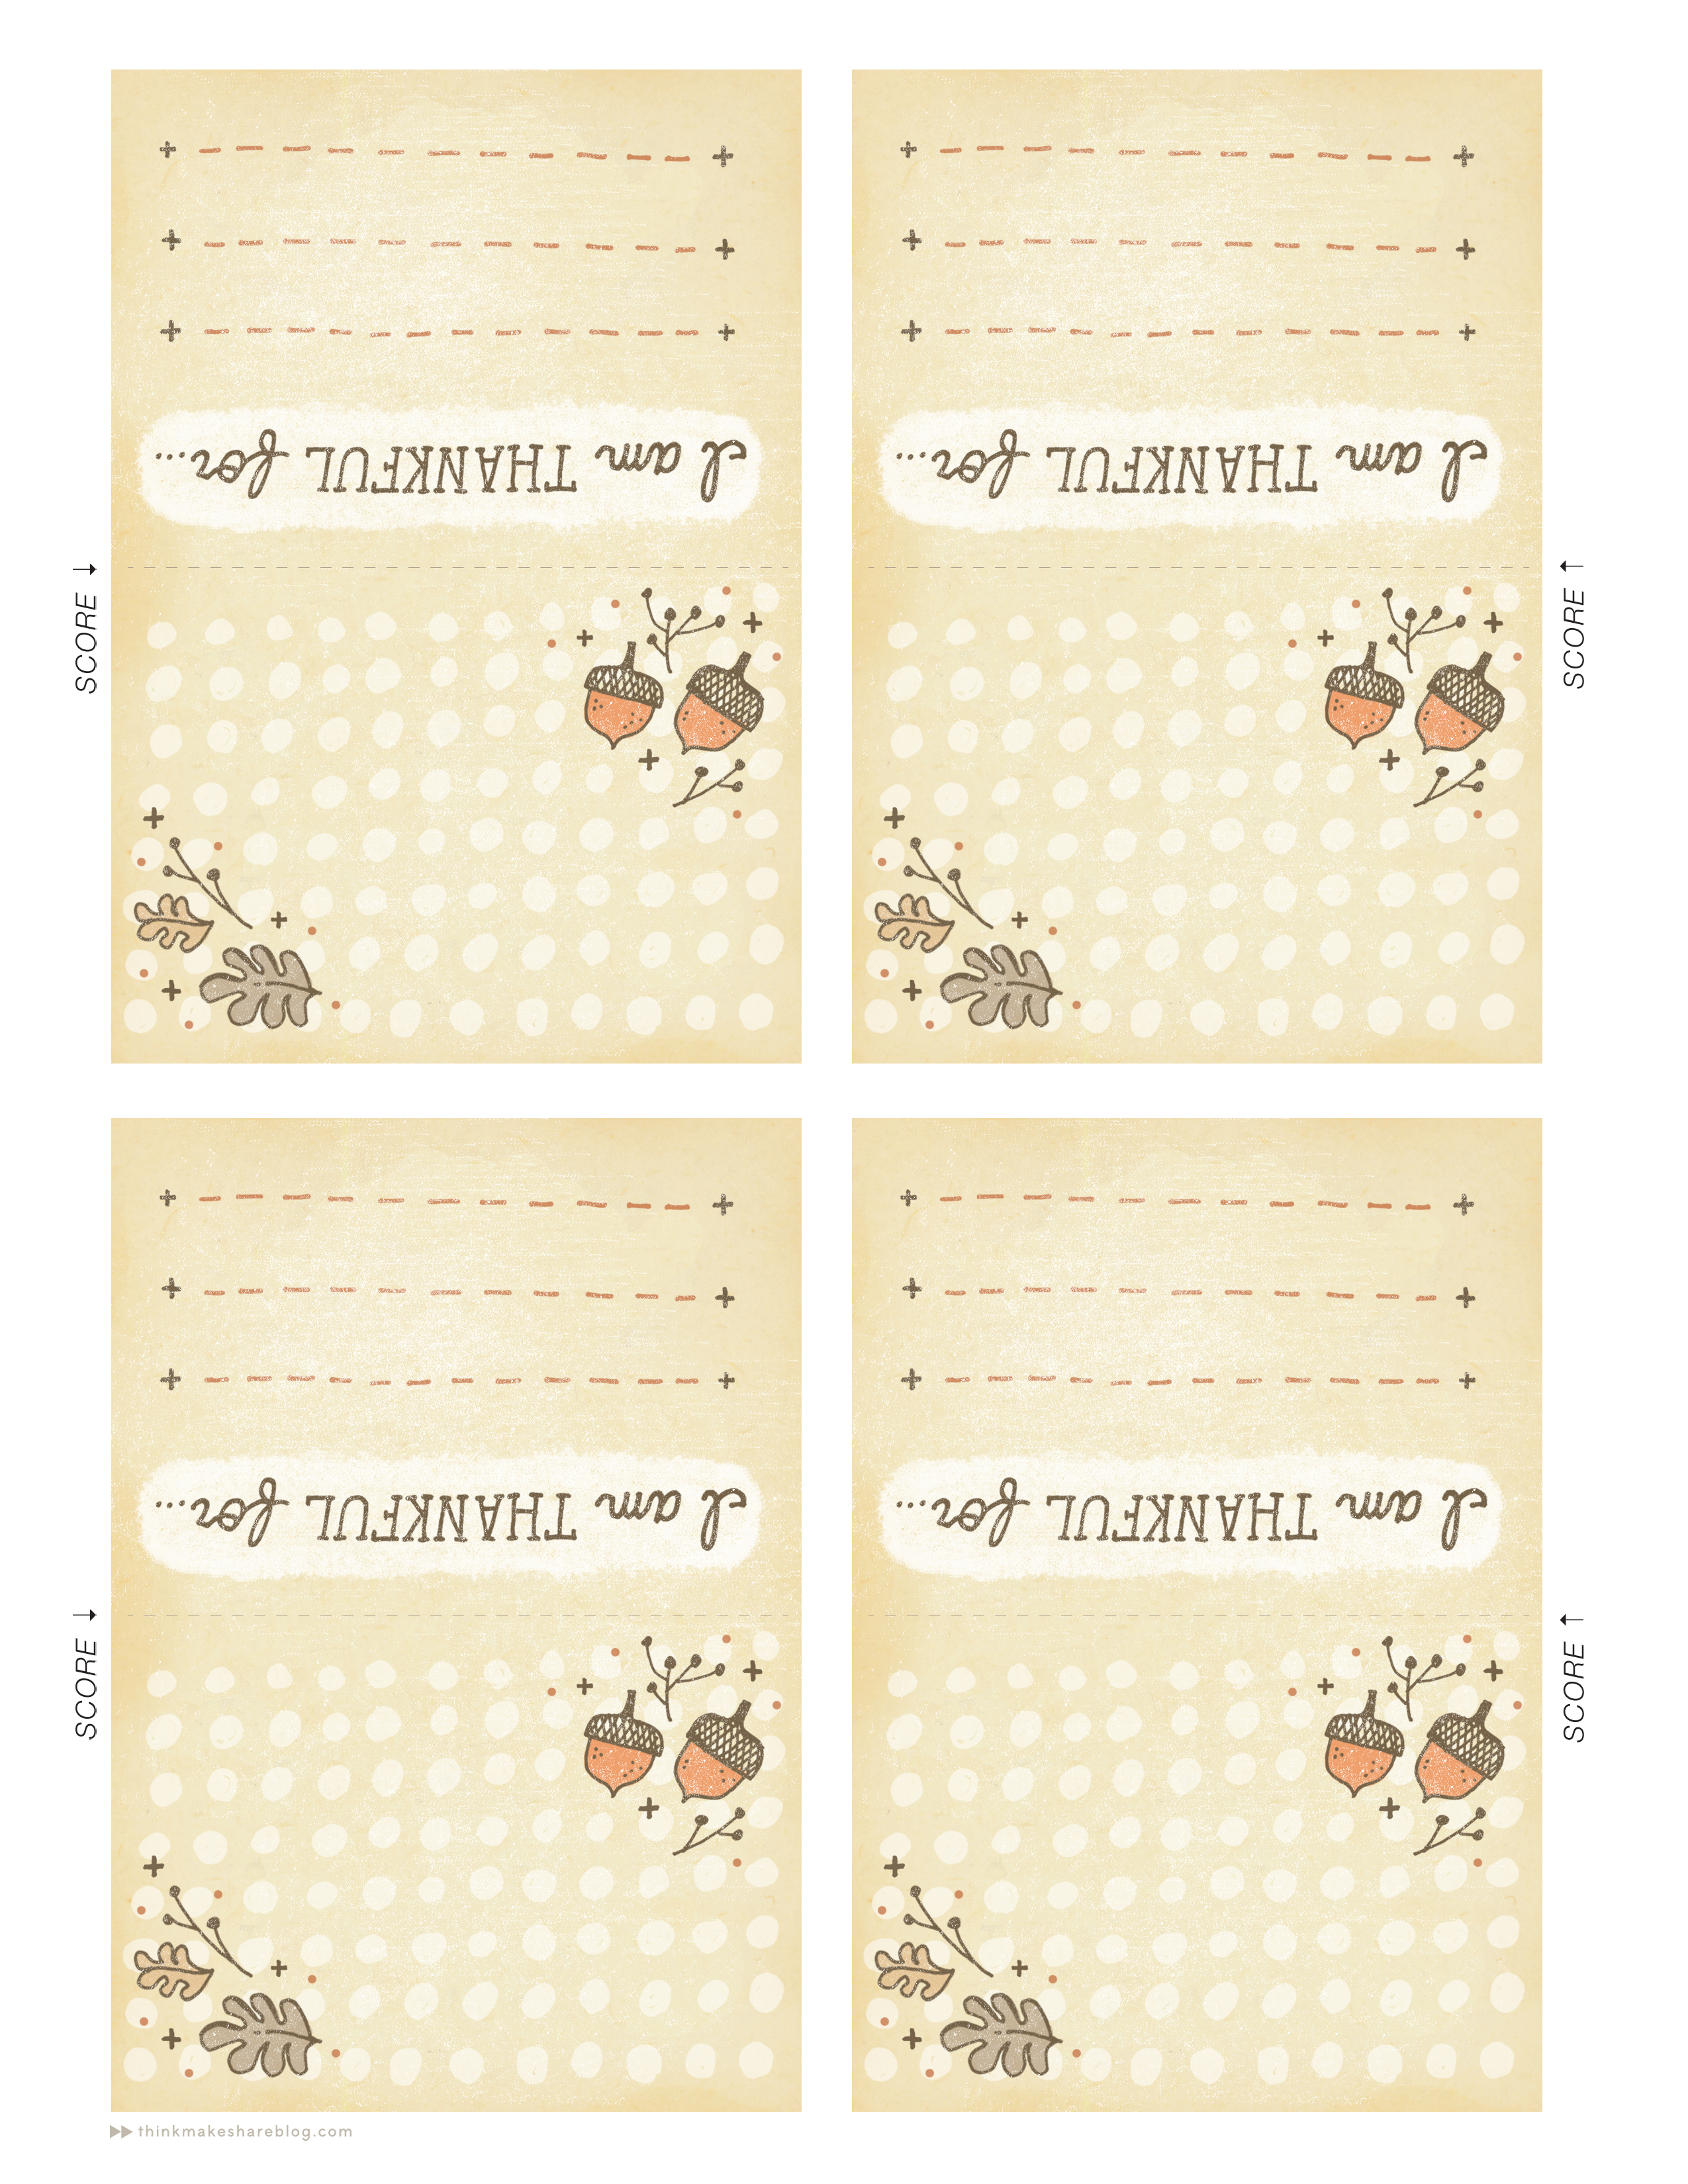 download your printable thanksgiving or friendsgiving place cards here